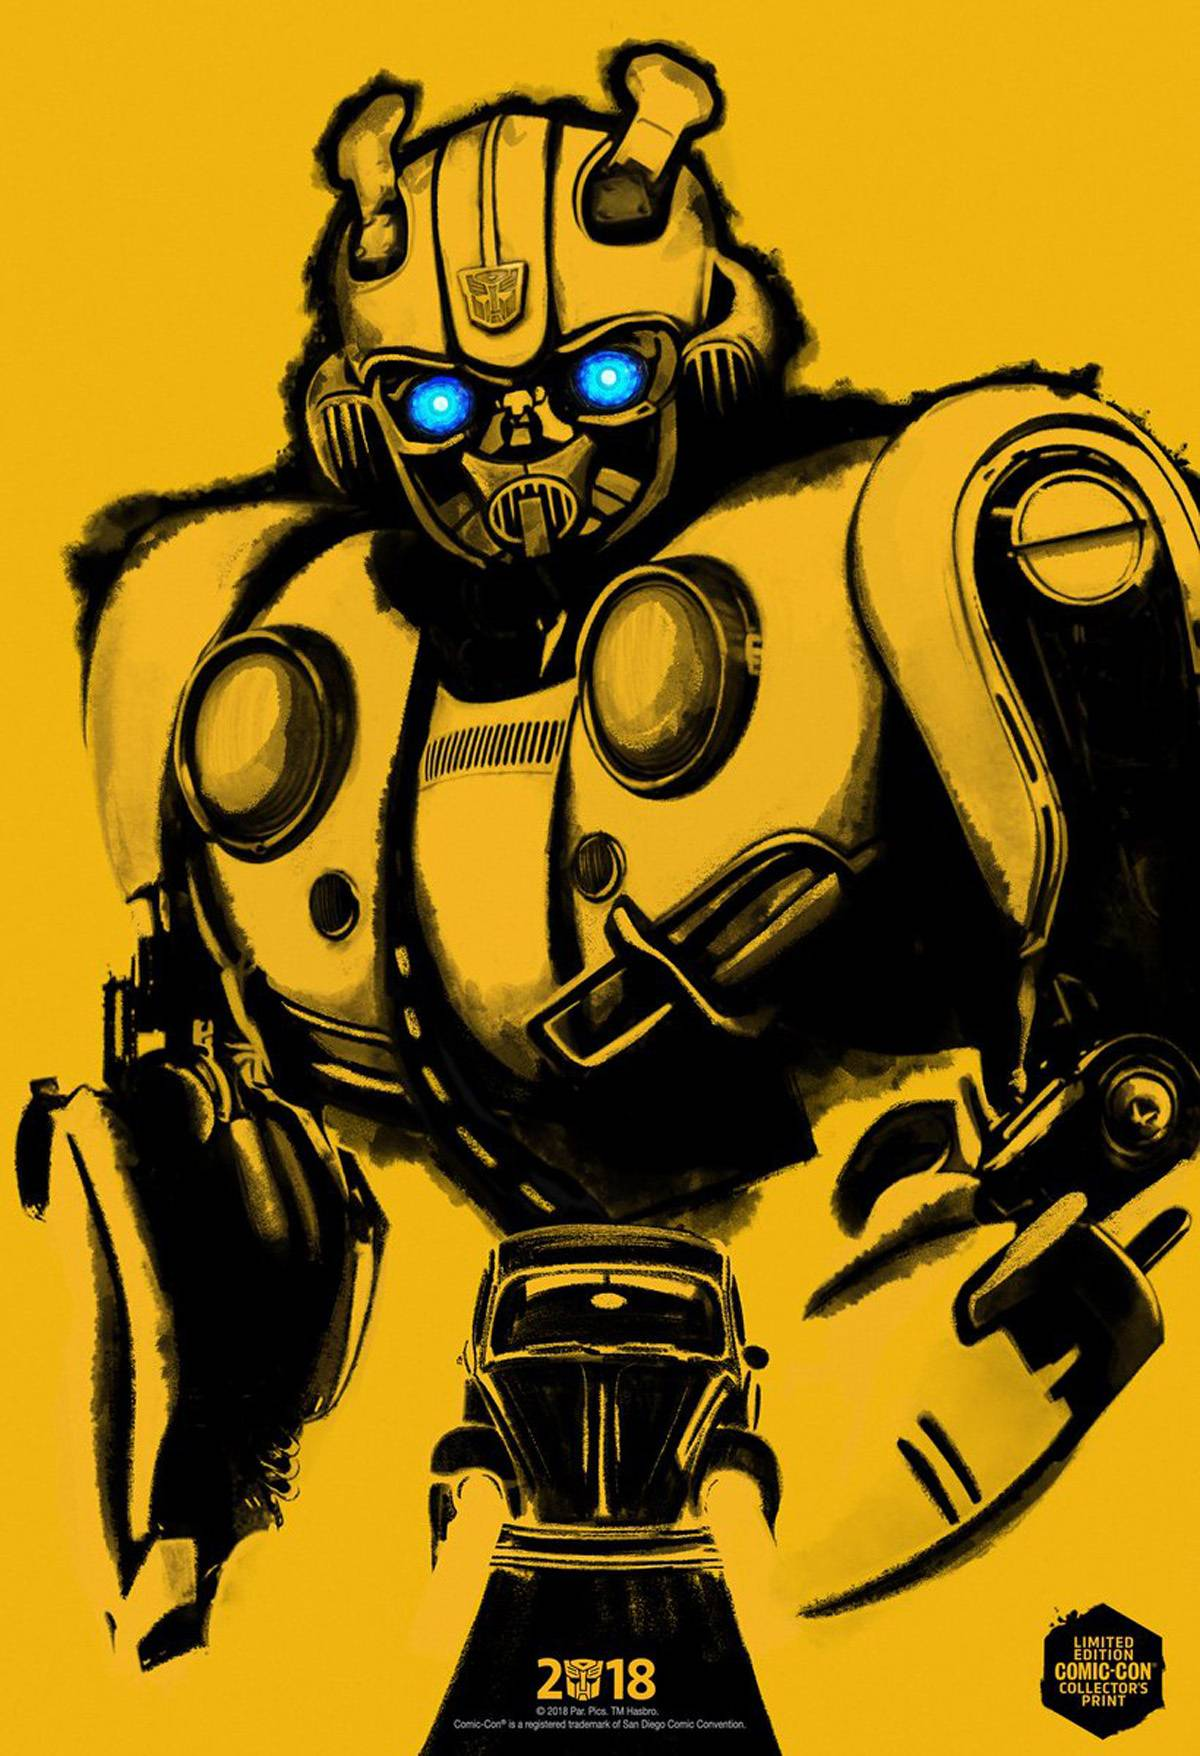 new-bumblebee-poster-art-and-new-details-on-the-villains-in-the-film2